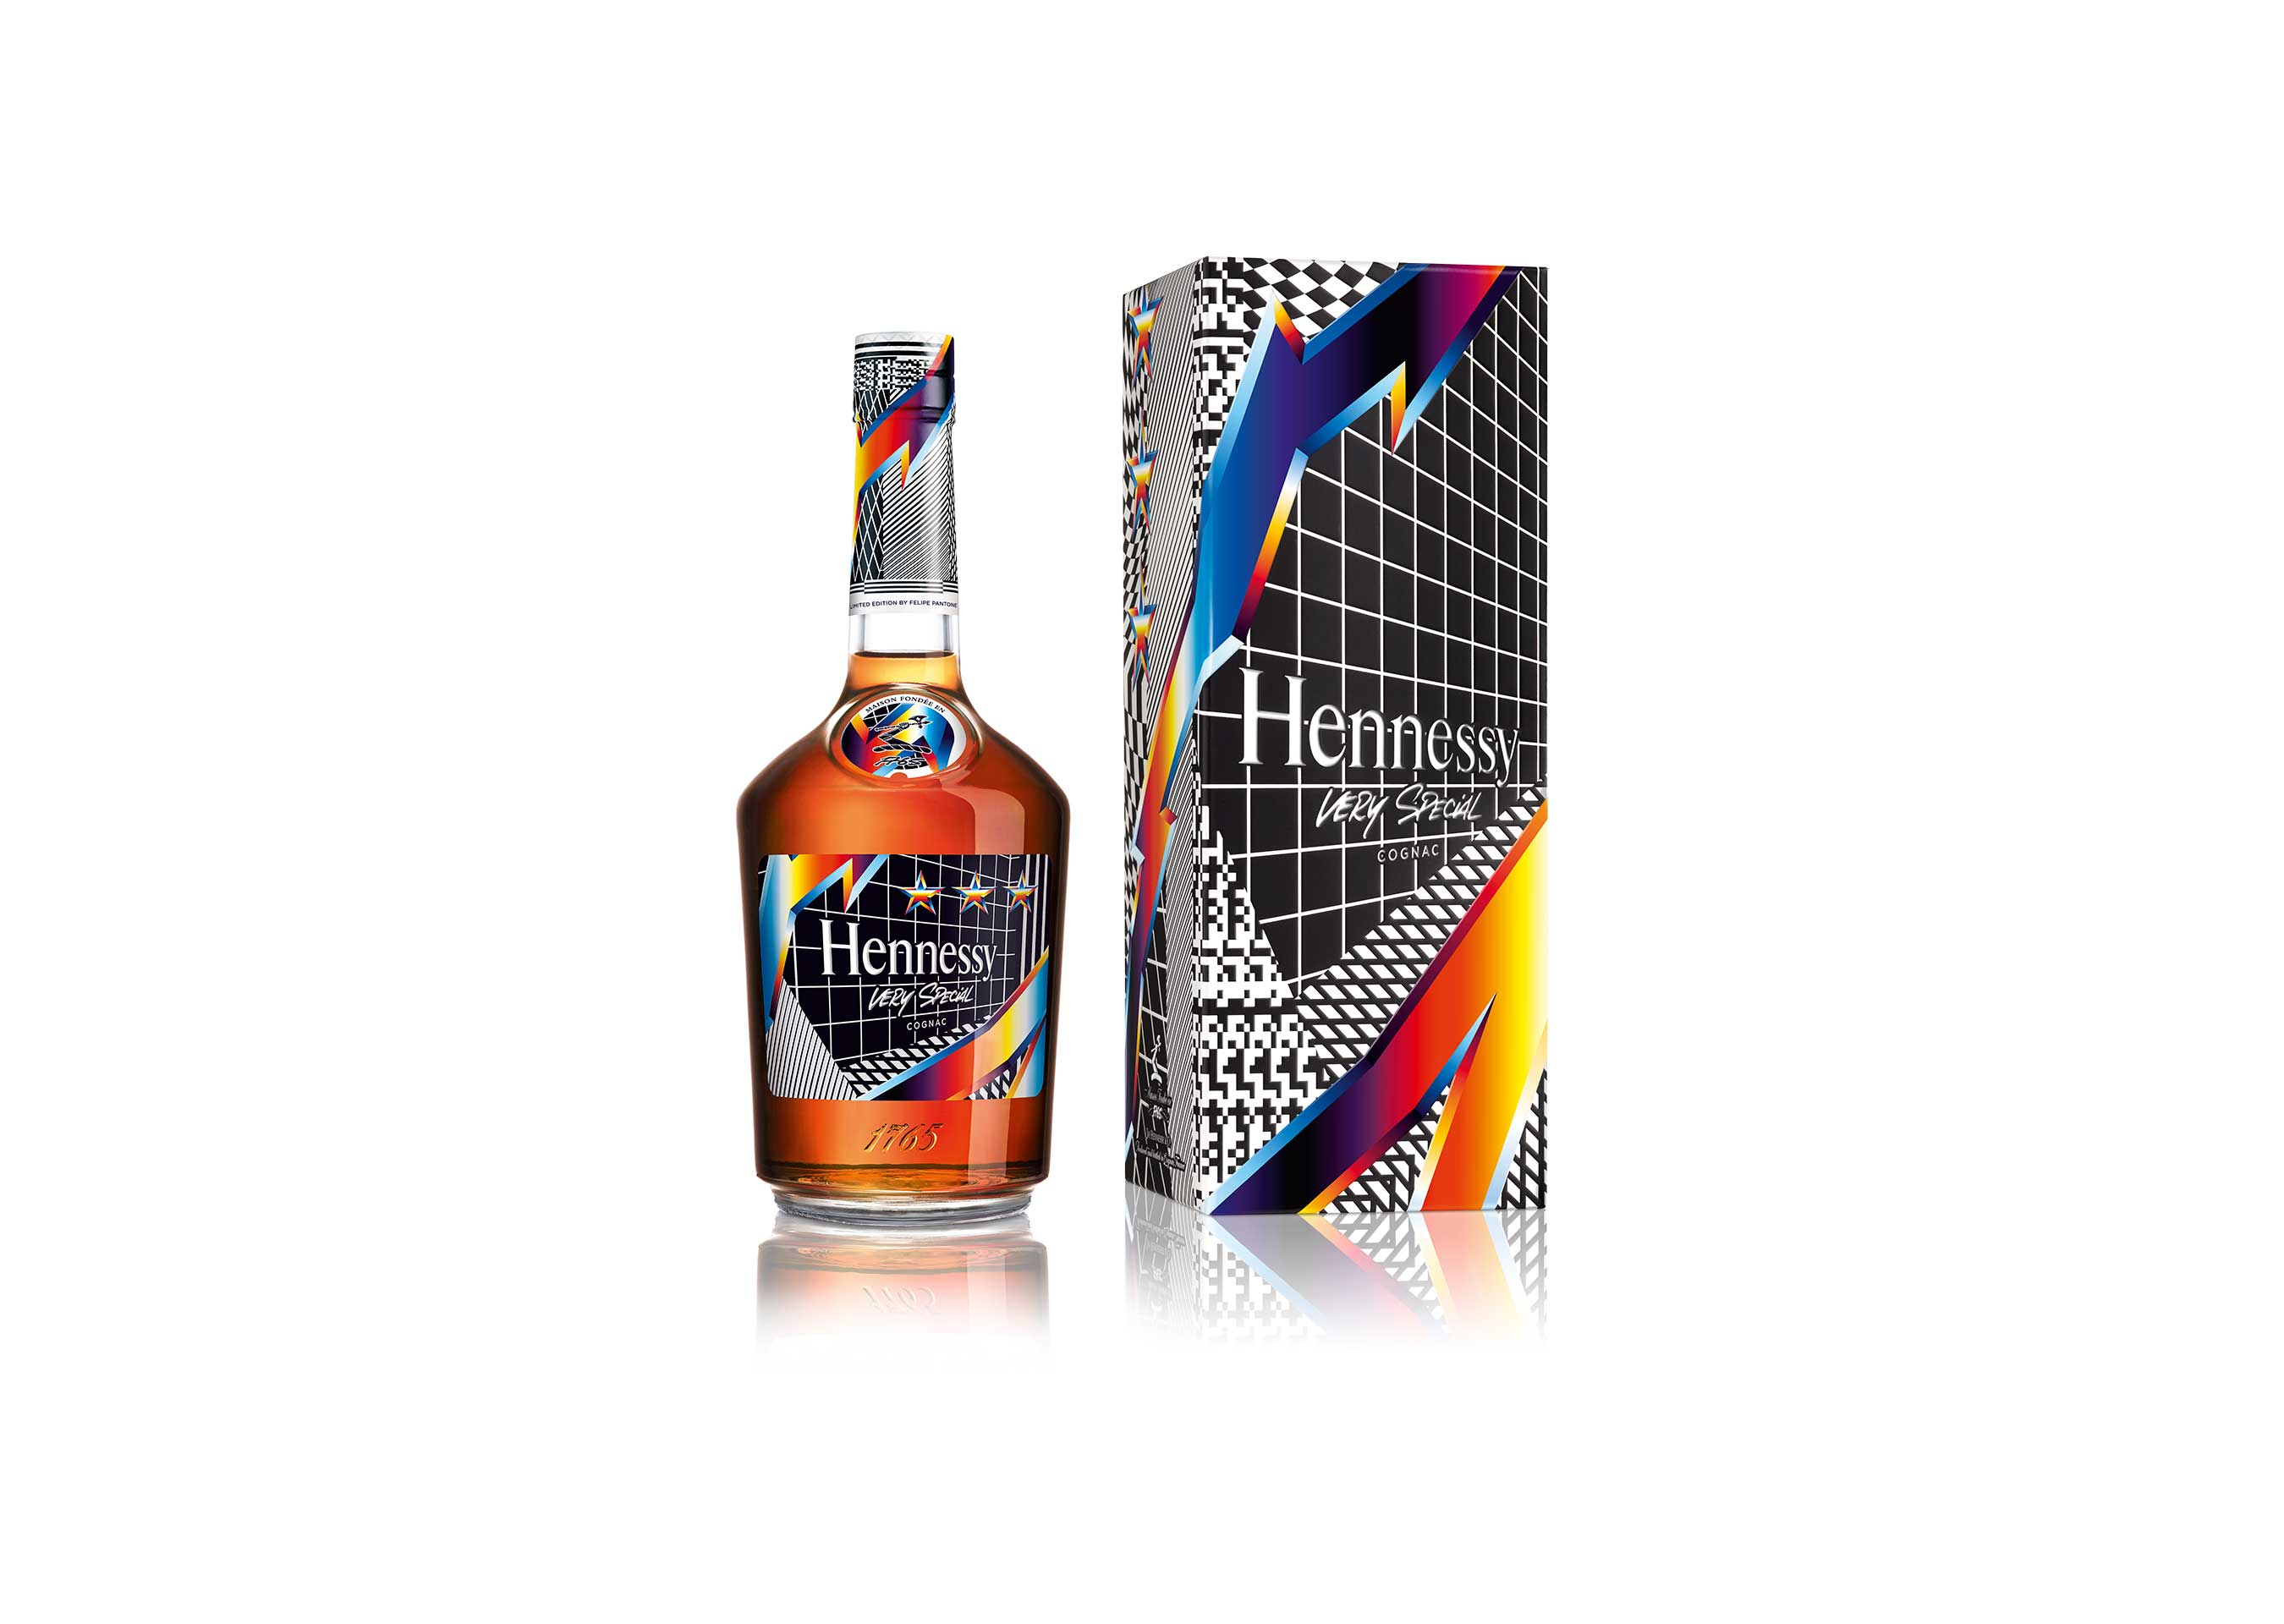 Felipe Pantone's artwork is an apt metaphor for Hennessy's ability to capture momentum through the centuries.